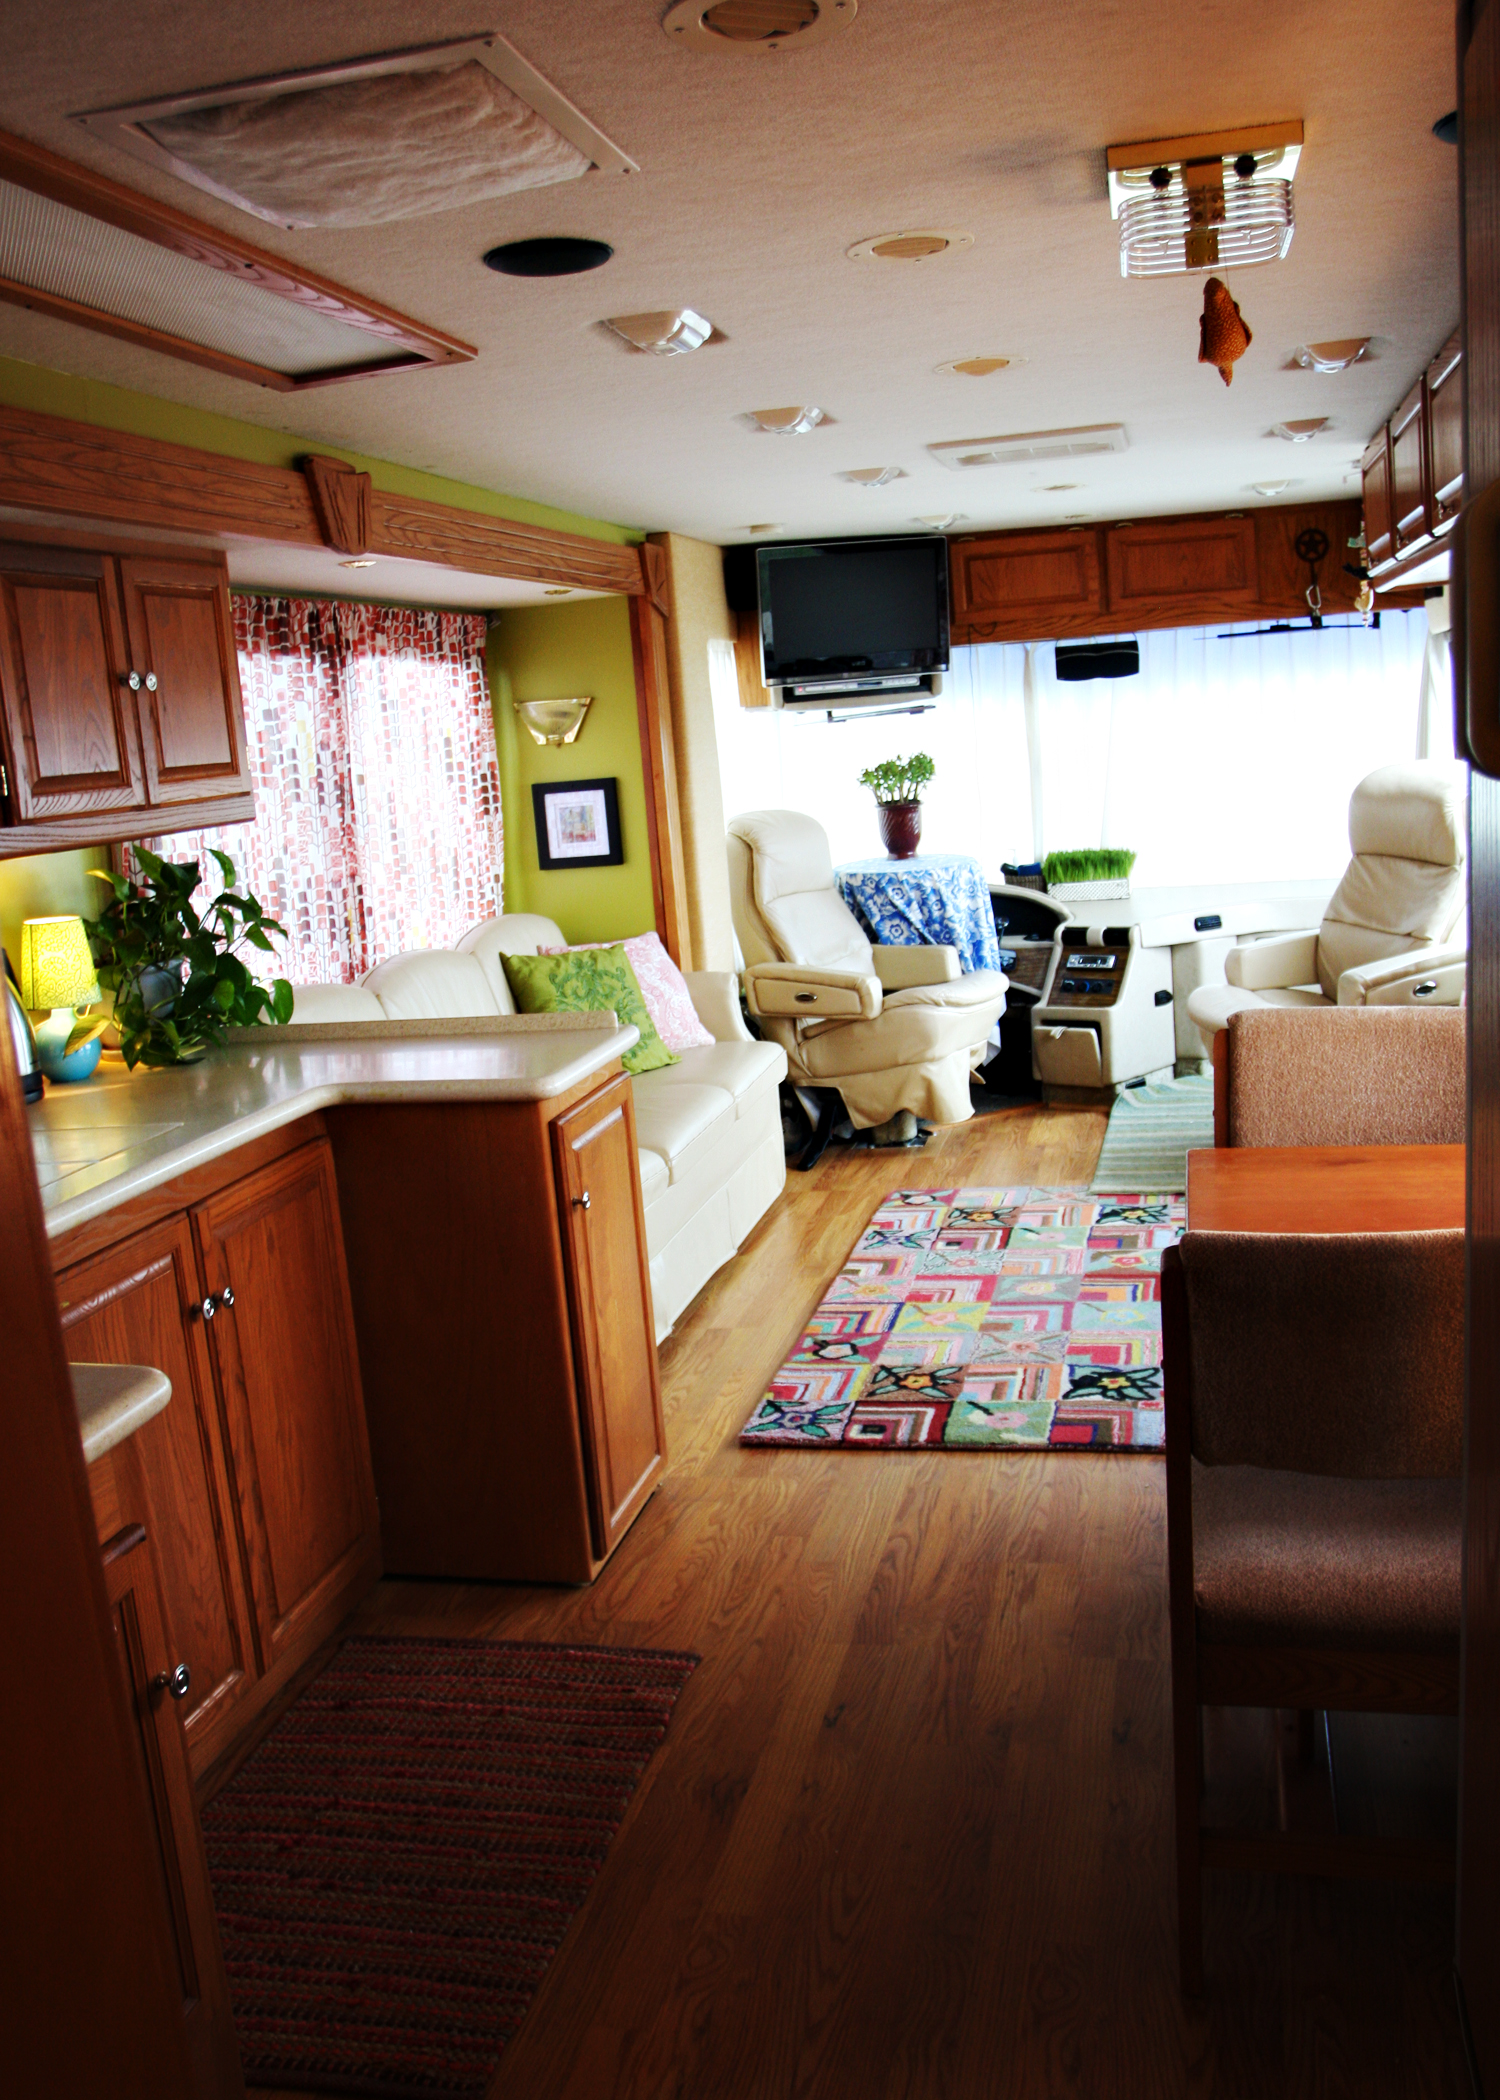 23_Kitchen and Living Area.jpg